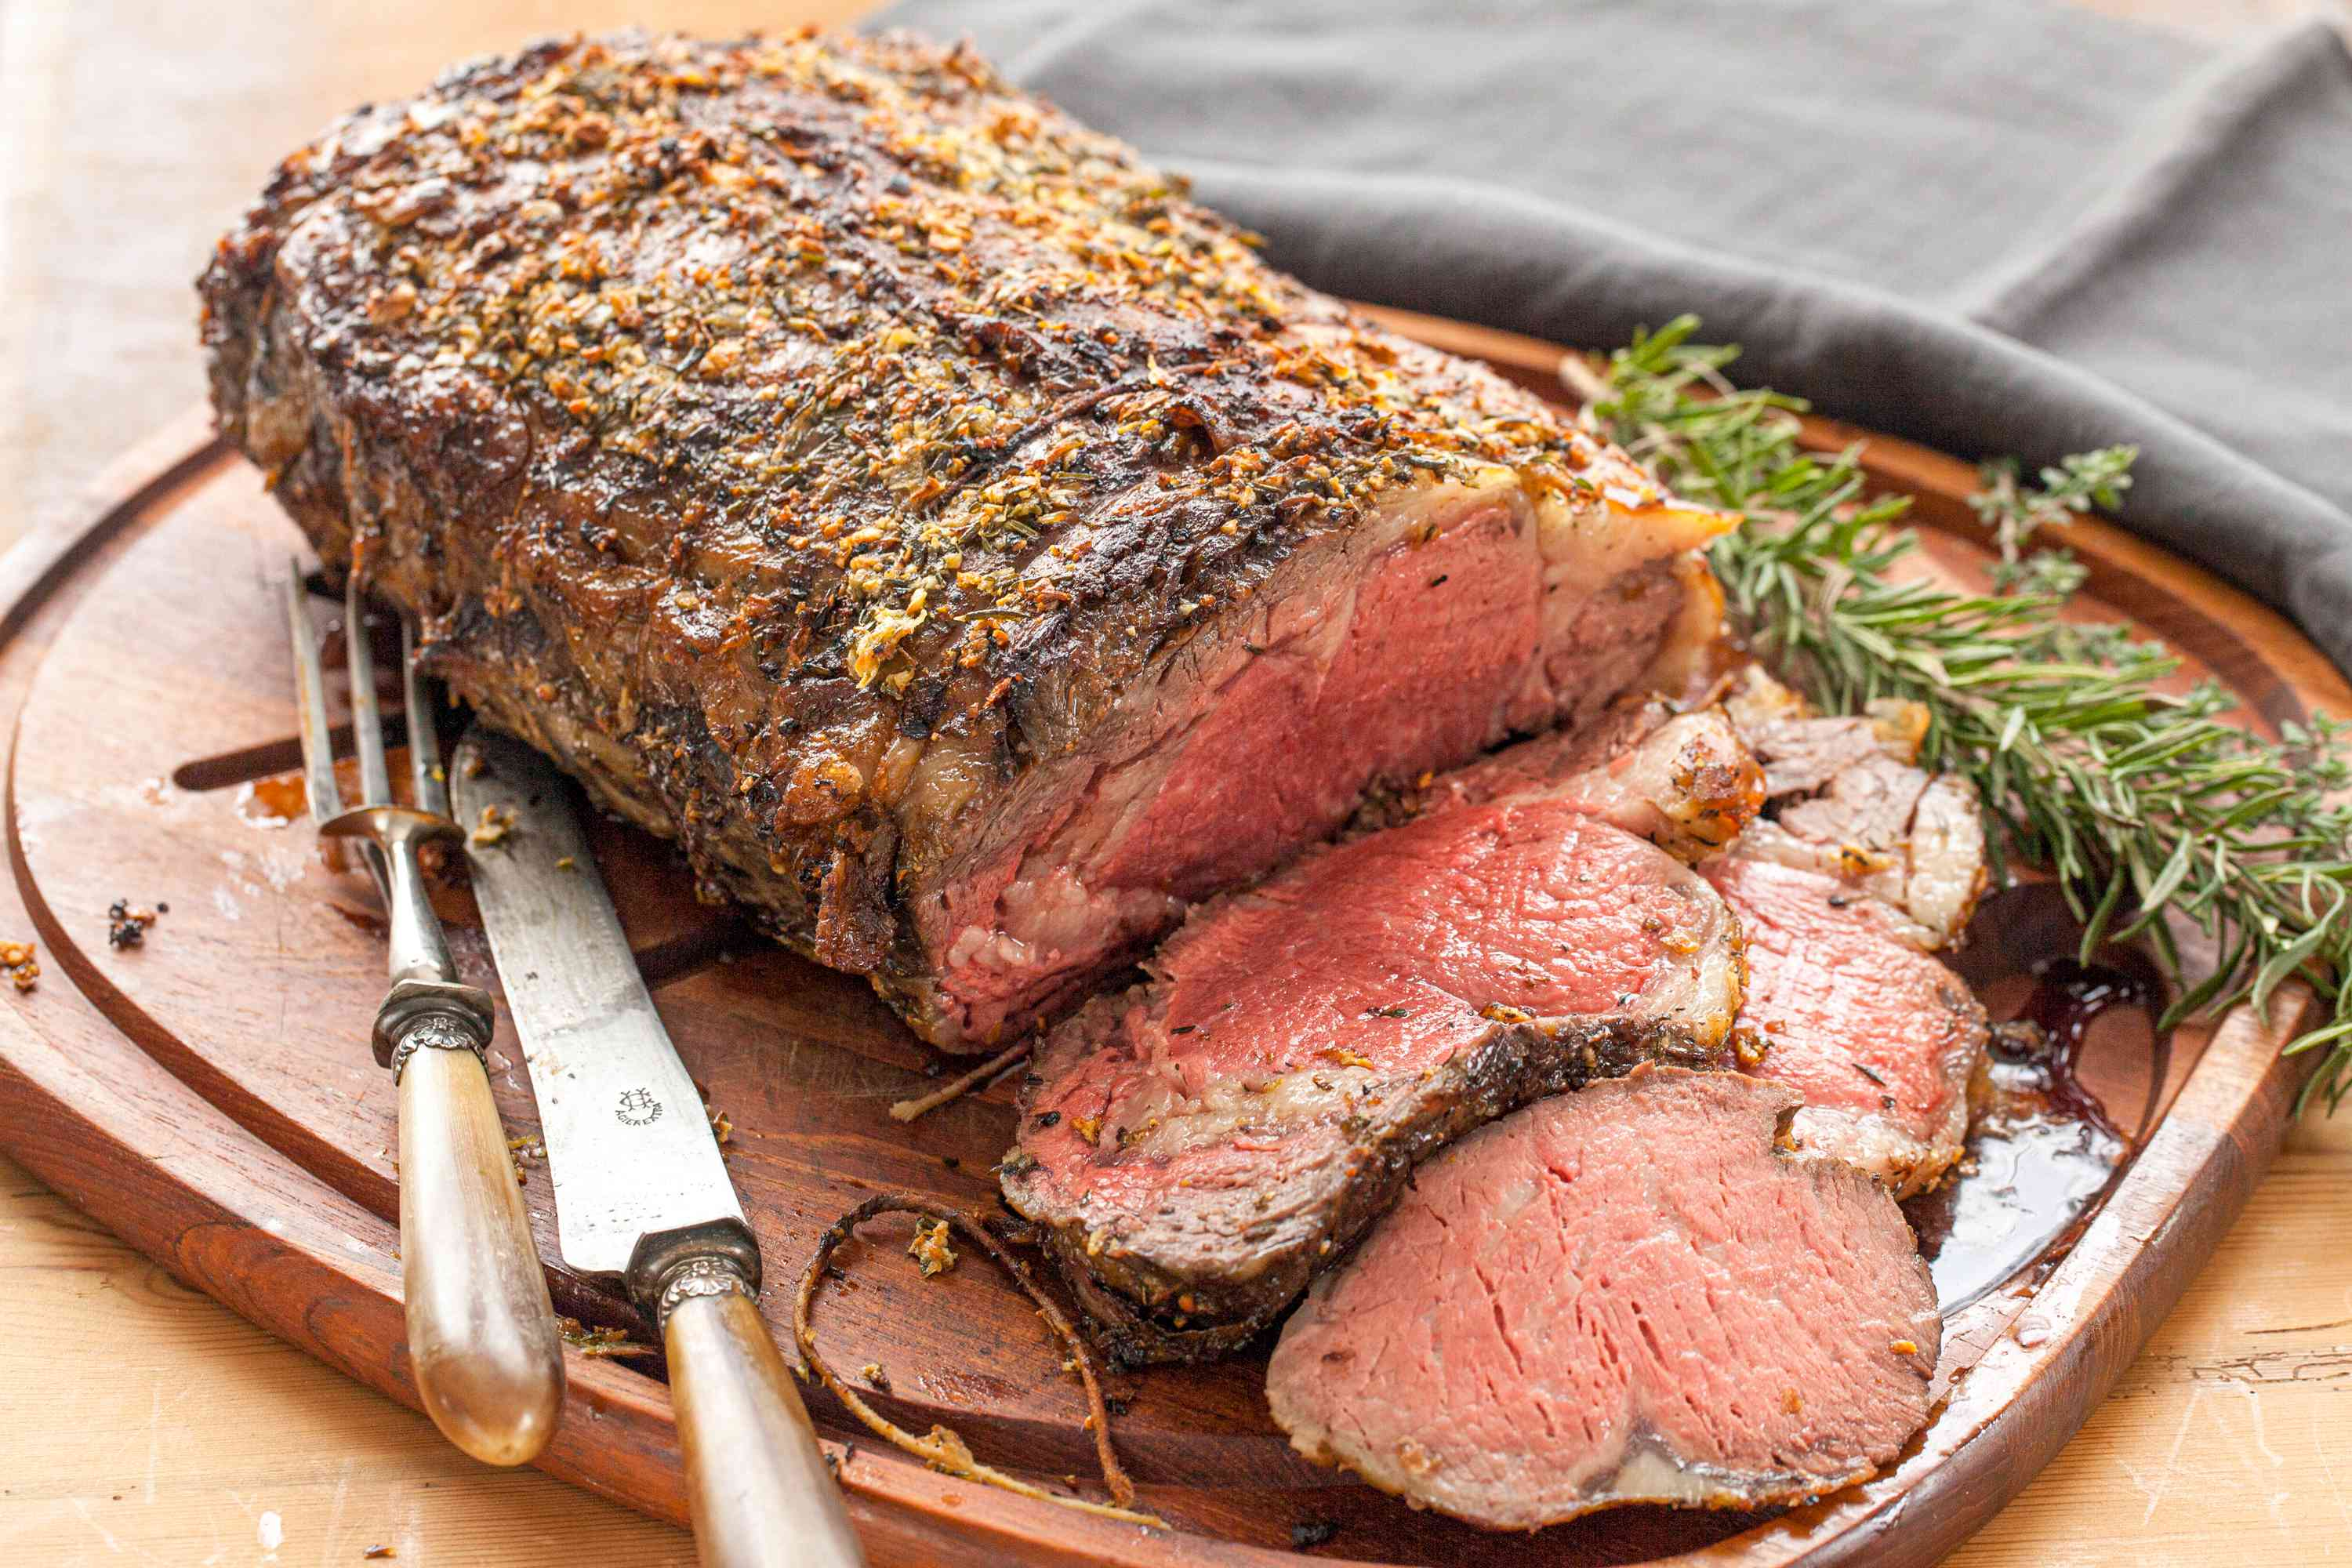 Herb butter prime rib with gravy being served on a cutting board.